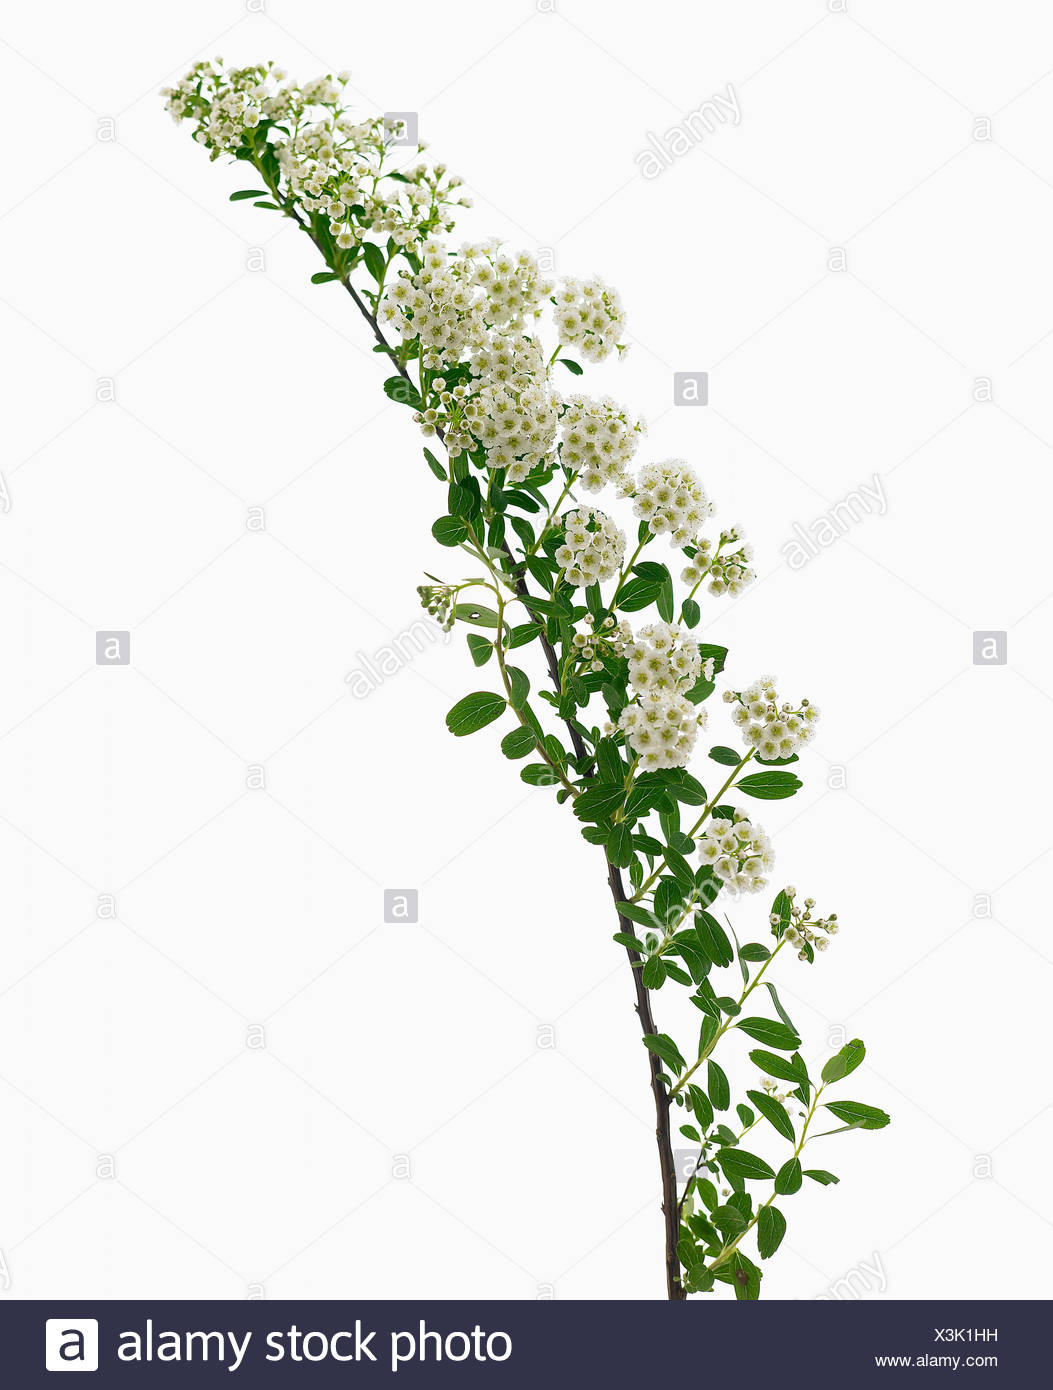 White flowers on single stem against a white background cutout stock spiraea nipponica snowmound white flowers on single stem against a white background stock mightylinksfo